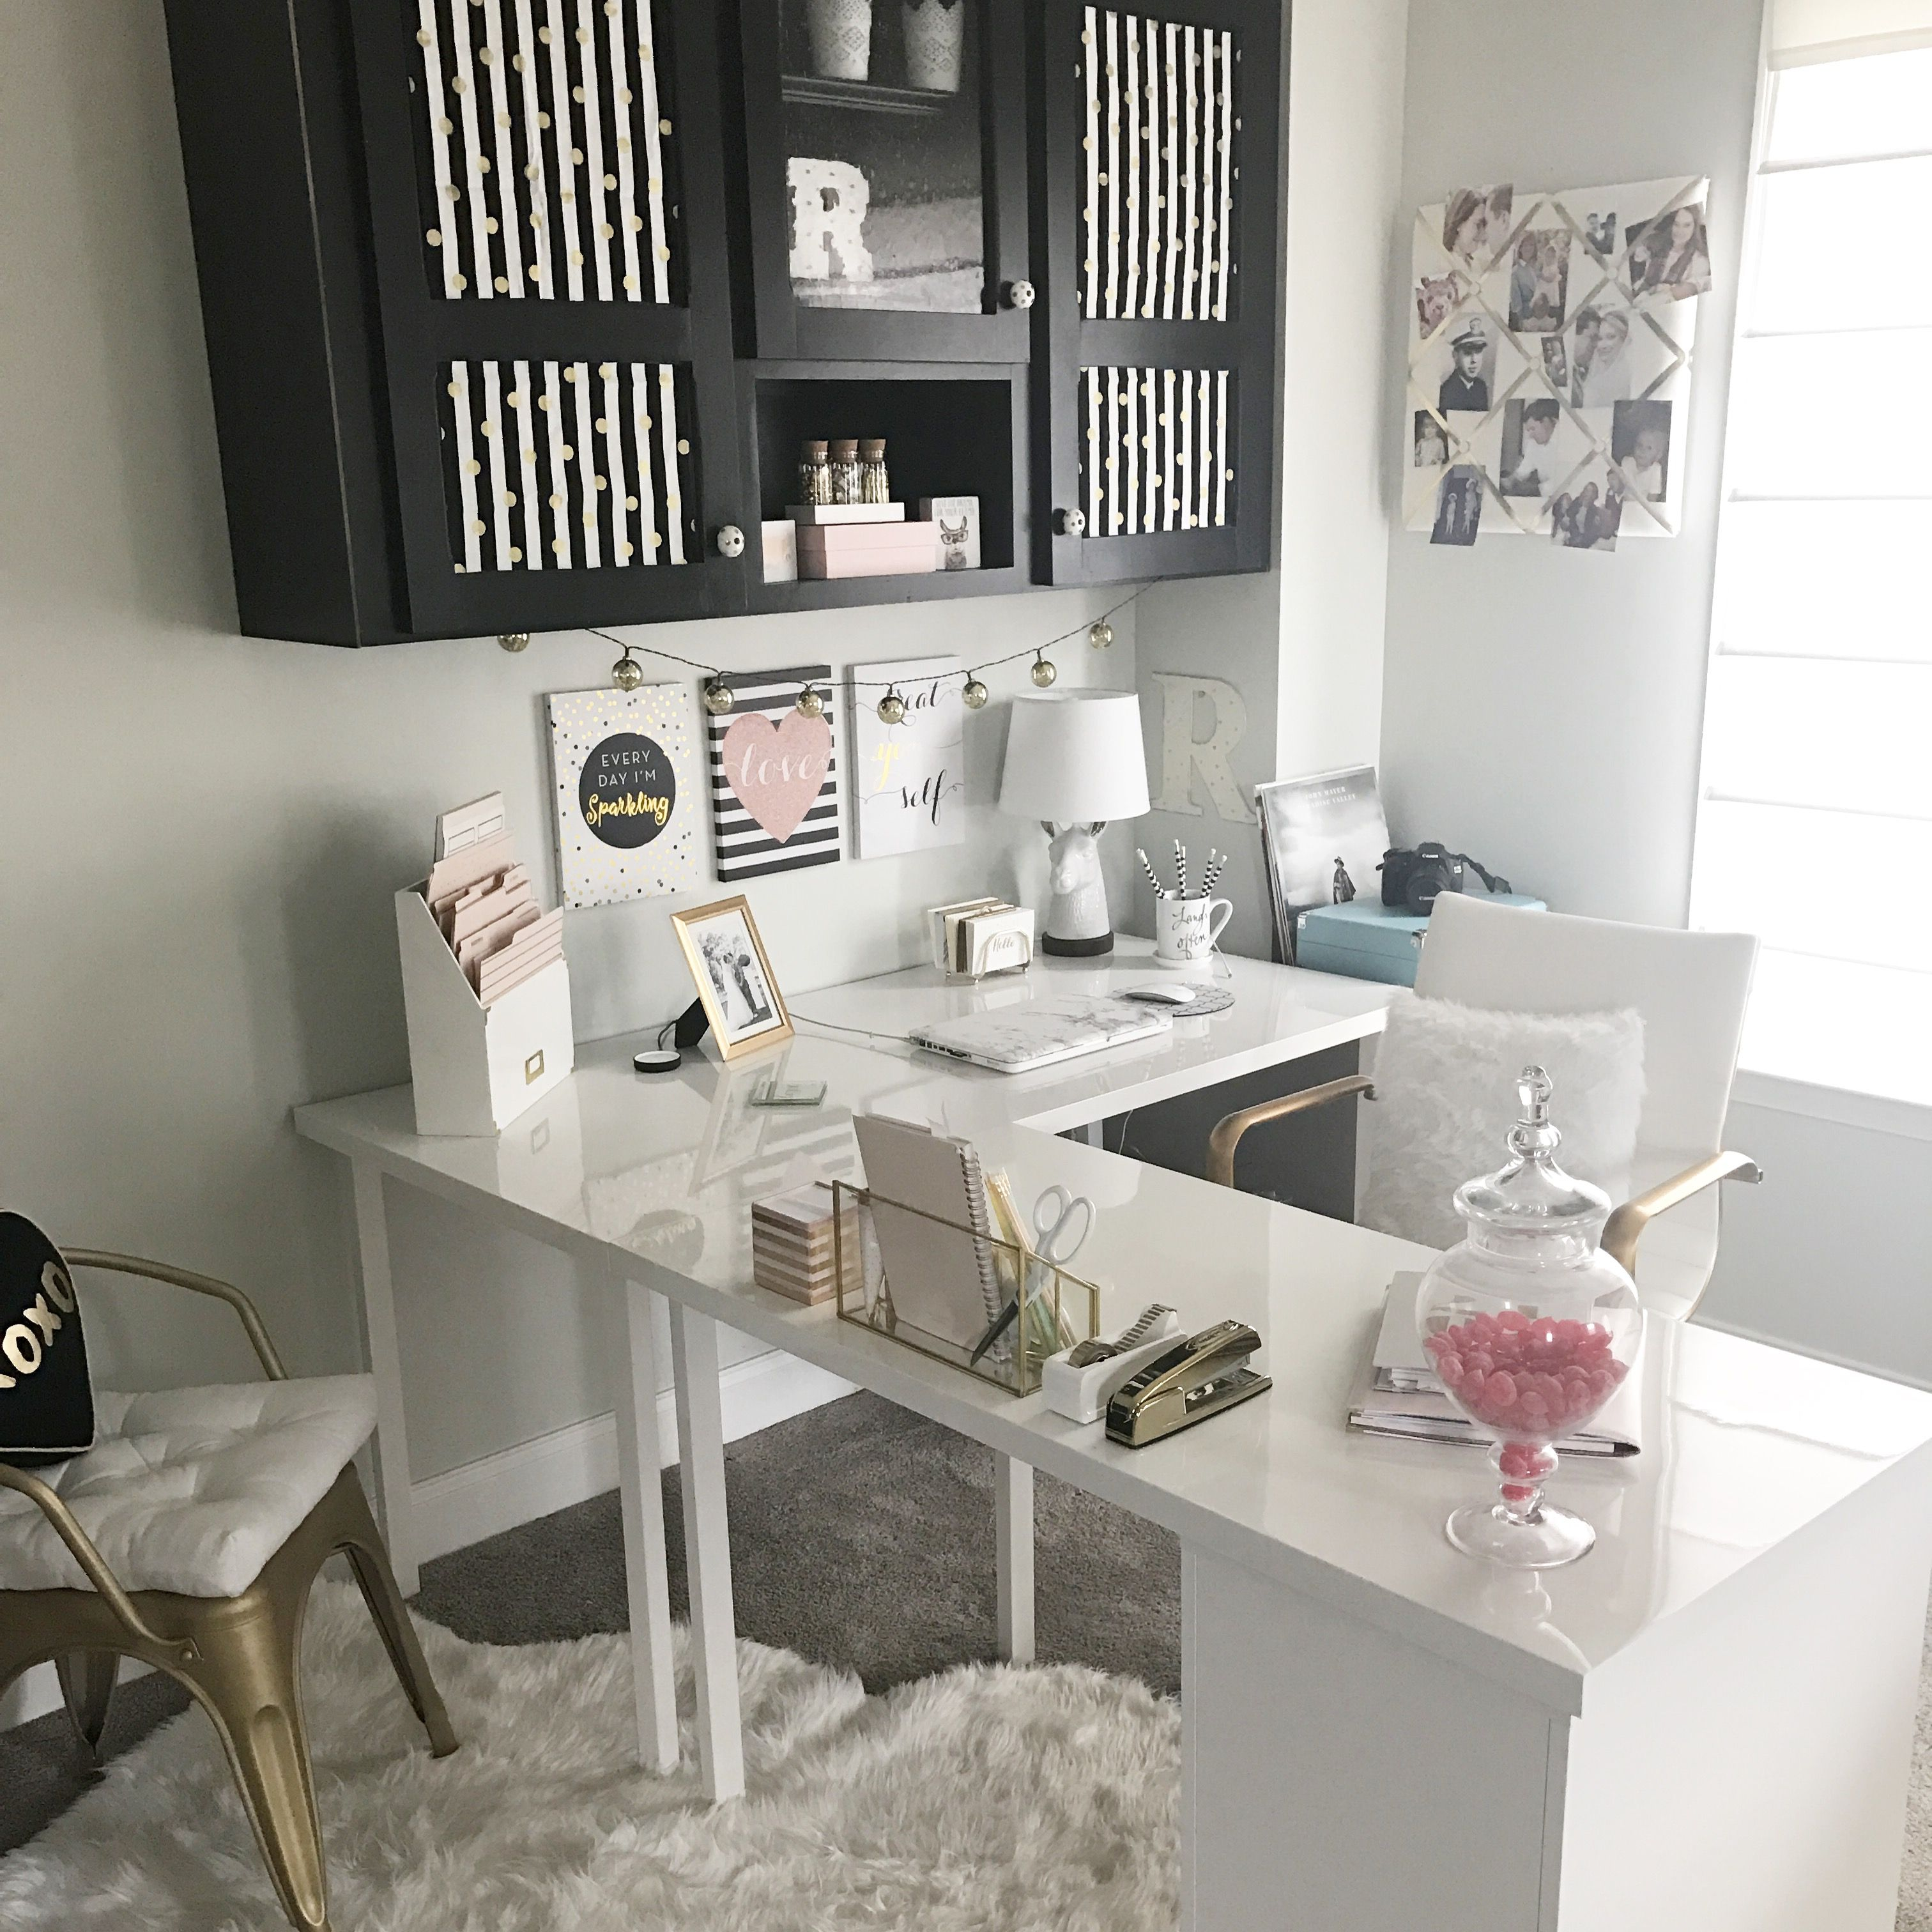 My New L Shaped Ikea Desk Reveal Home Office Space Home Office Decor Home Office Design